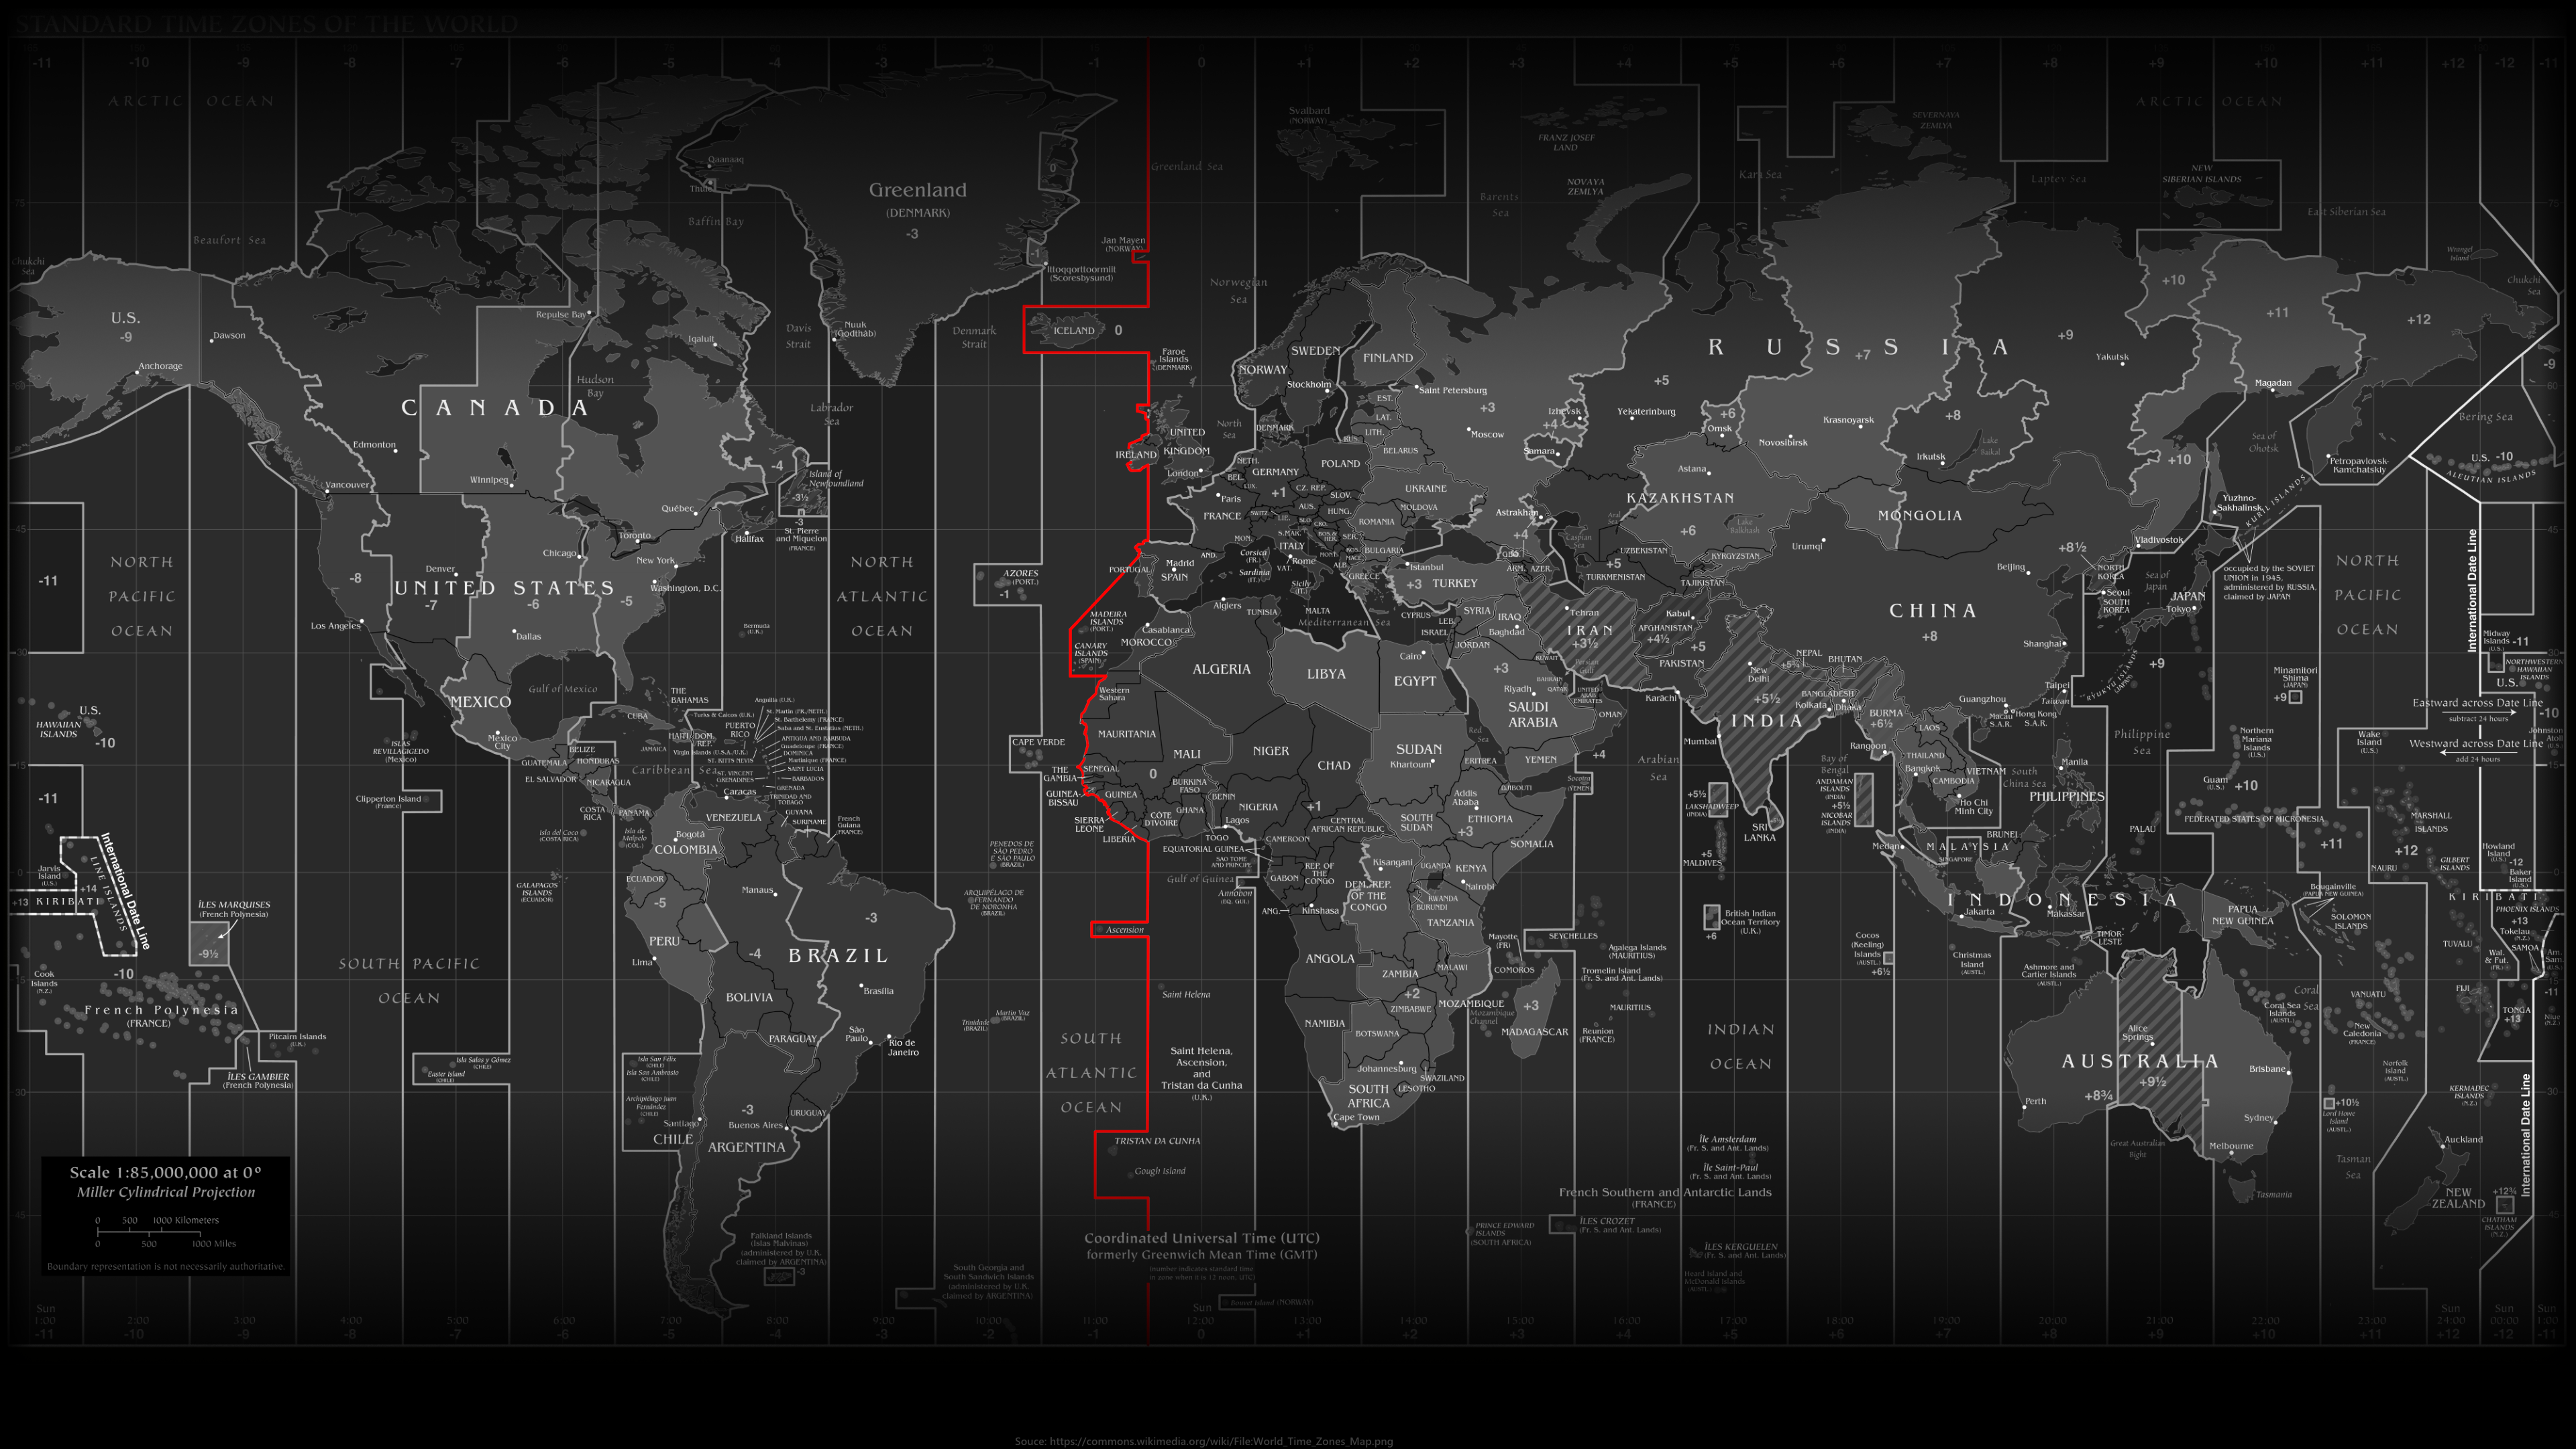 World Time Zones Map 2016 3840x2160 16 9 Png World Time Zones Time Zone Map World Map Wallpaper